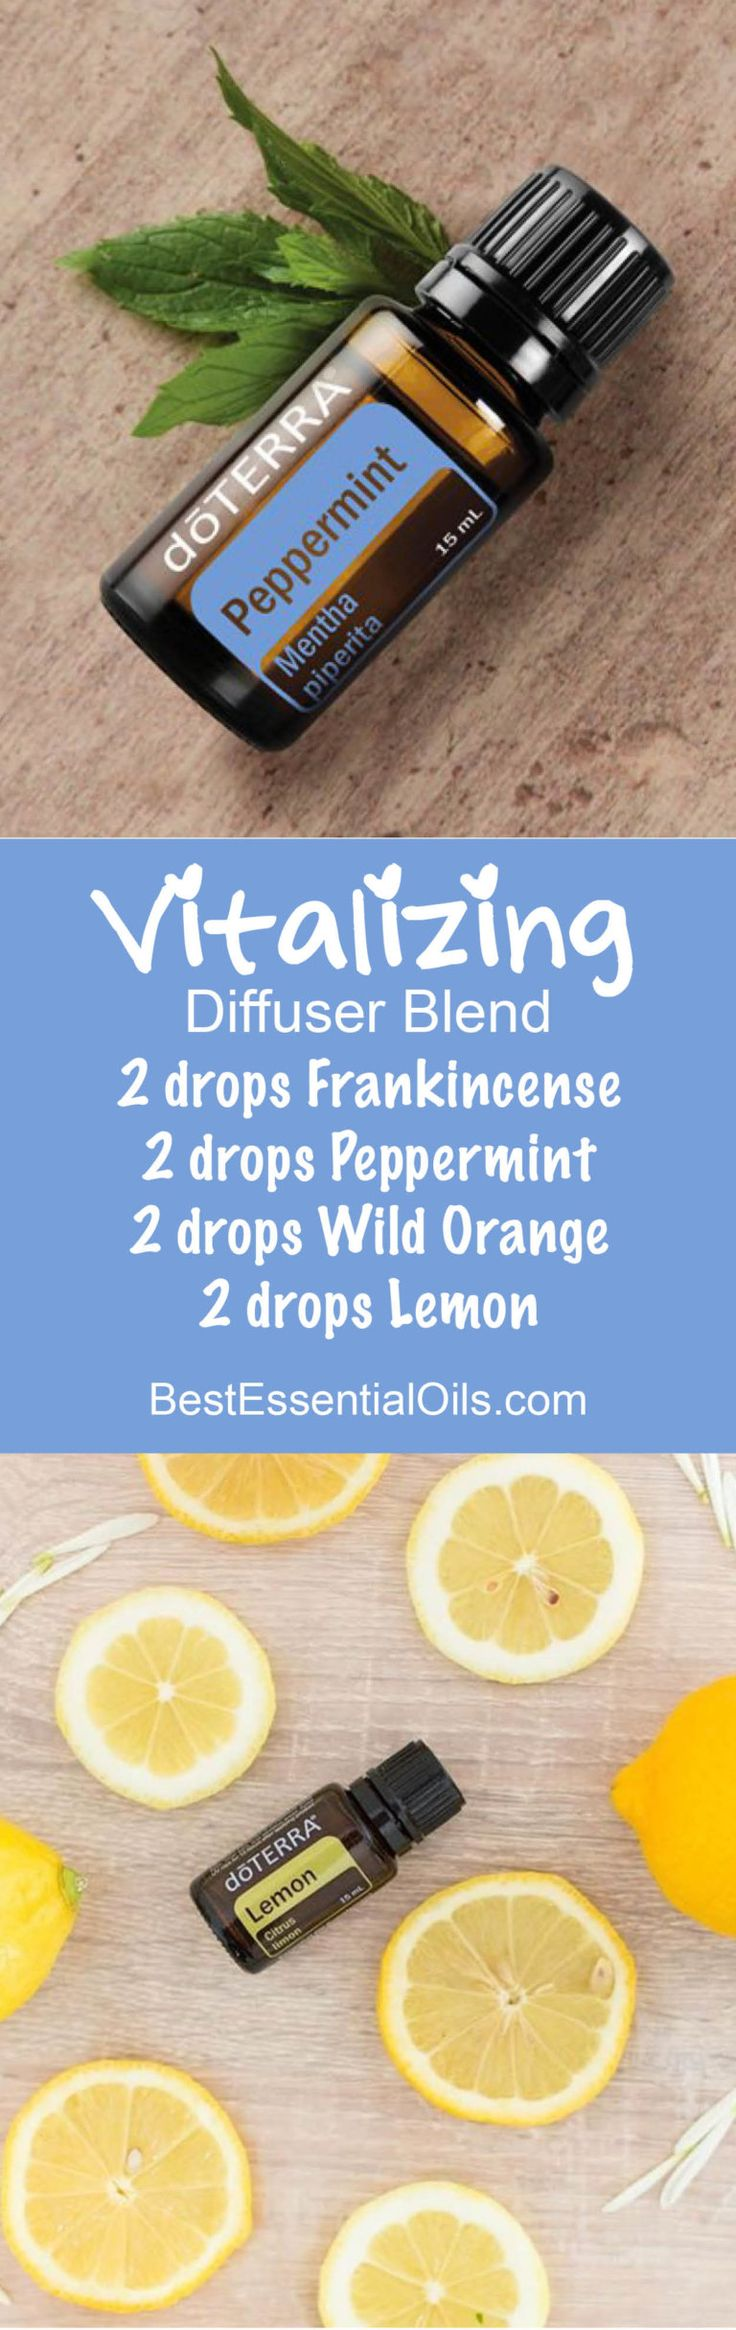 Vitalizing Essential Oils Diffuser Blend ••• Buy dōTERRA essential oils online at www.mydoterra.com/suzysholar, or contact me suzy.sholar@gmail.com for more info.